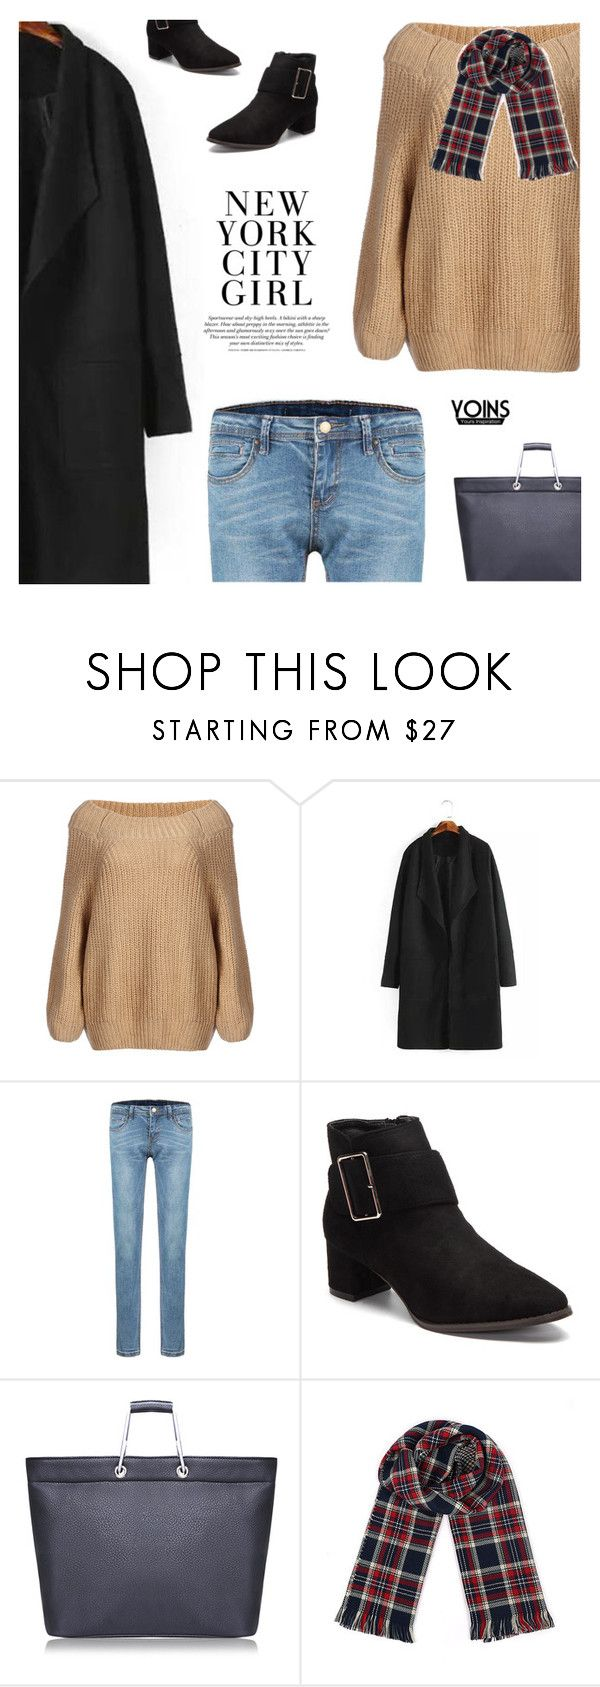 """A Friend Is Like A Star That Twinkles & Glows - Yoins X"" by paradiselemonade ❤ liked on Polyvore featuring H&M, yoins, yoinscollection and loveyoins"